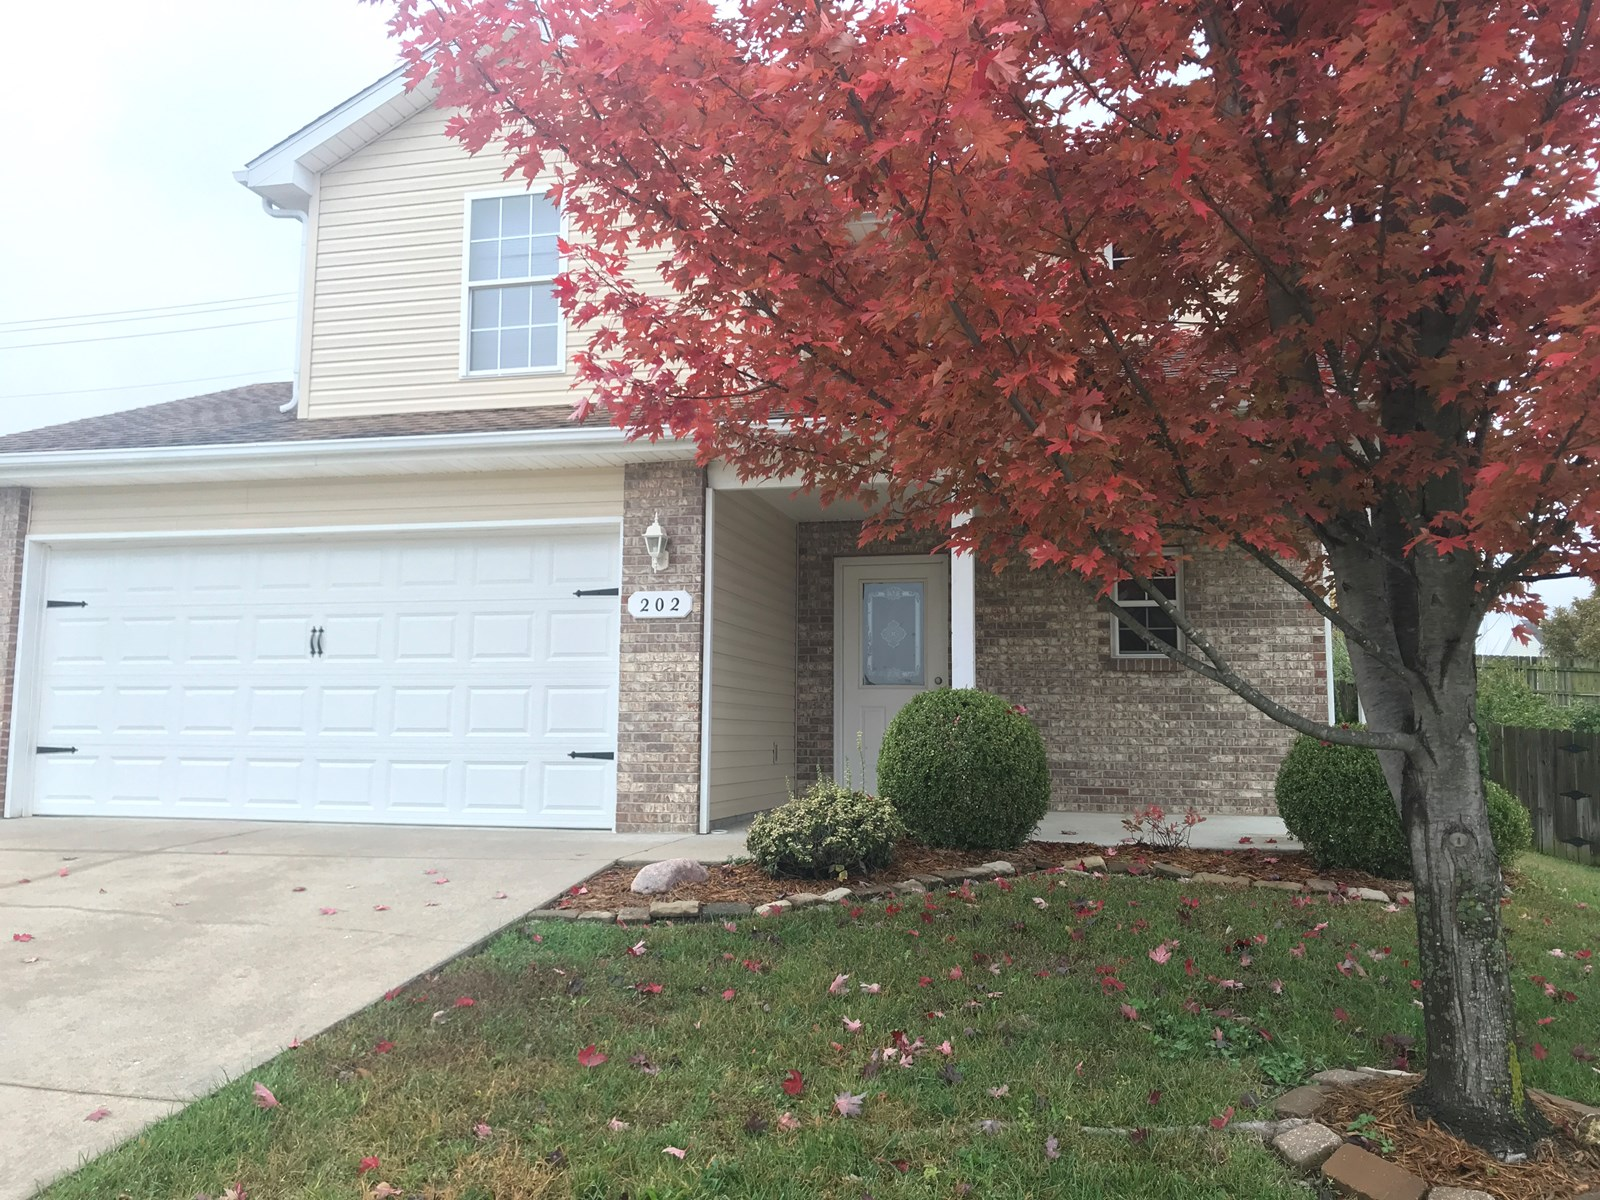 3 BR, 2 BA Home with 2 Car Garage in Columbia, MO